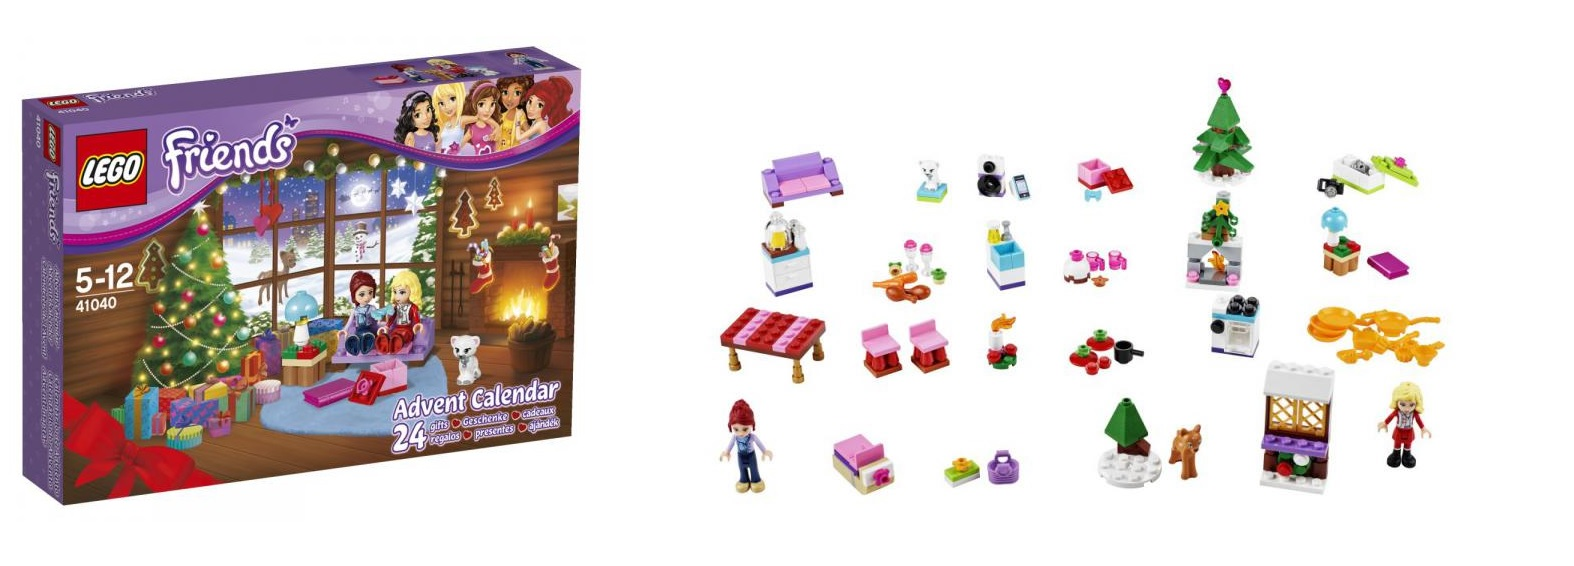 Advent Calendar Online Games Free Online Advent Calendar A Count Down To Christmas Day Lego Friends Advent Calendar 2016 Calendar Template 2016